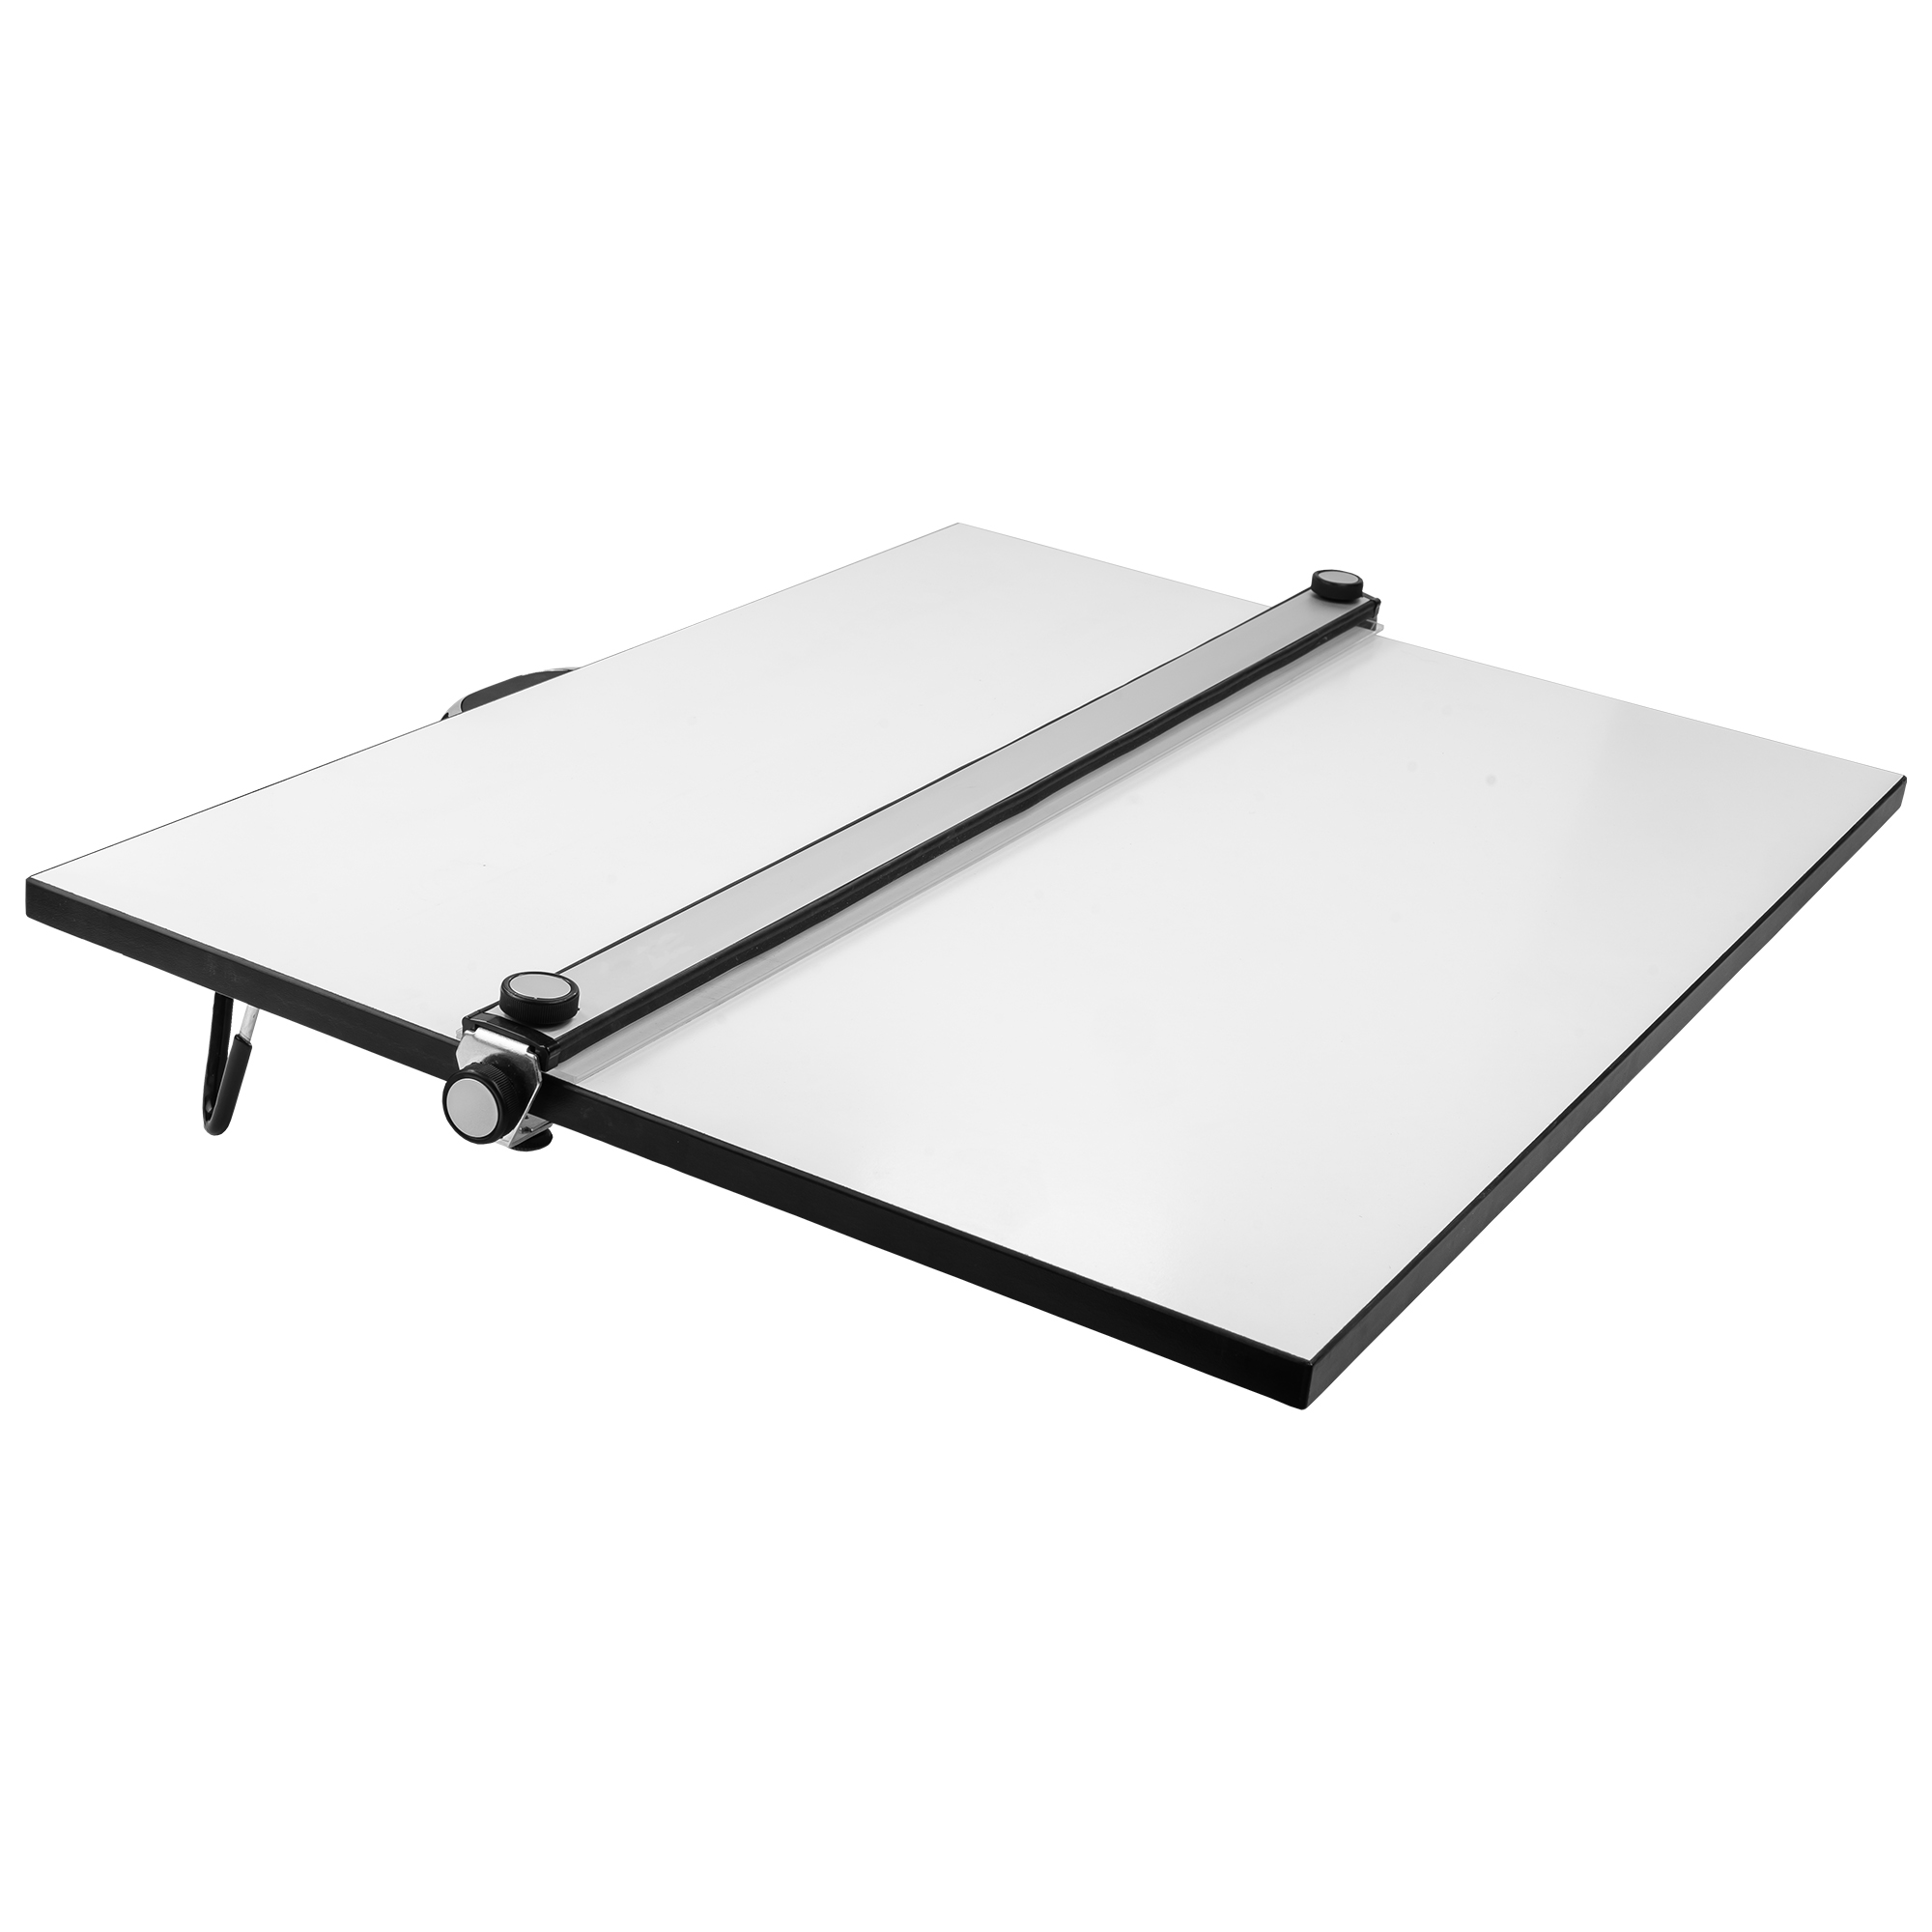 the pxb drafting drawing board from pacific arc, made for drafting, architecture, engineering, design, art.